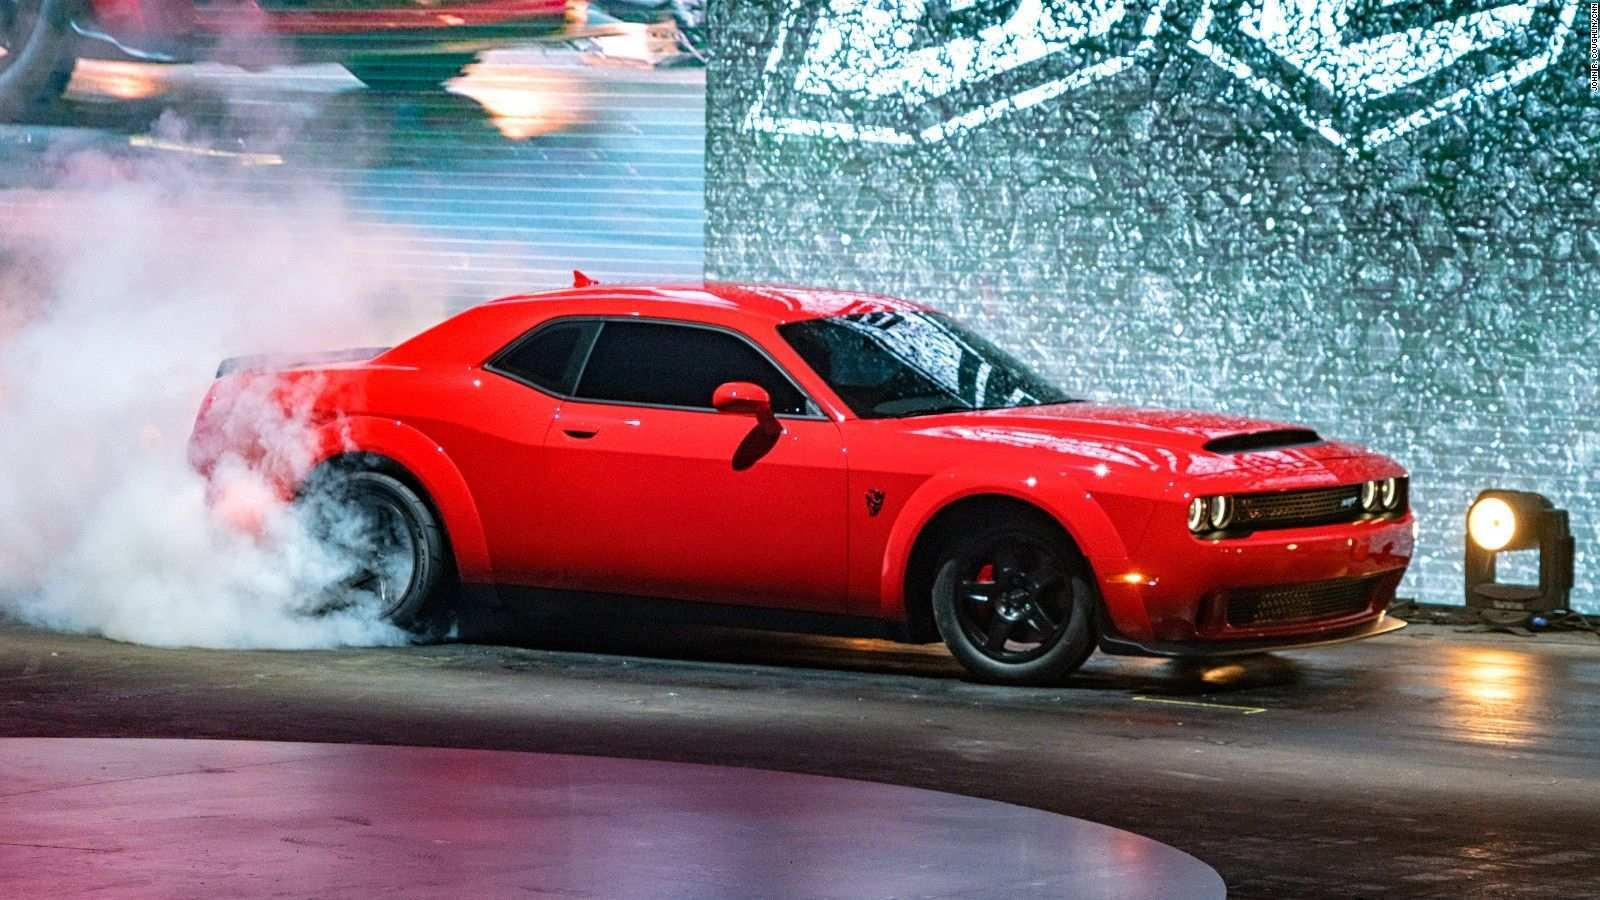 14 All New Images Of 2020 Dodge Challenger Exterior for Images Of 2020 Dodge Challenger